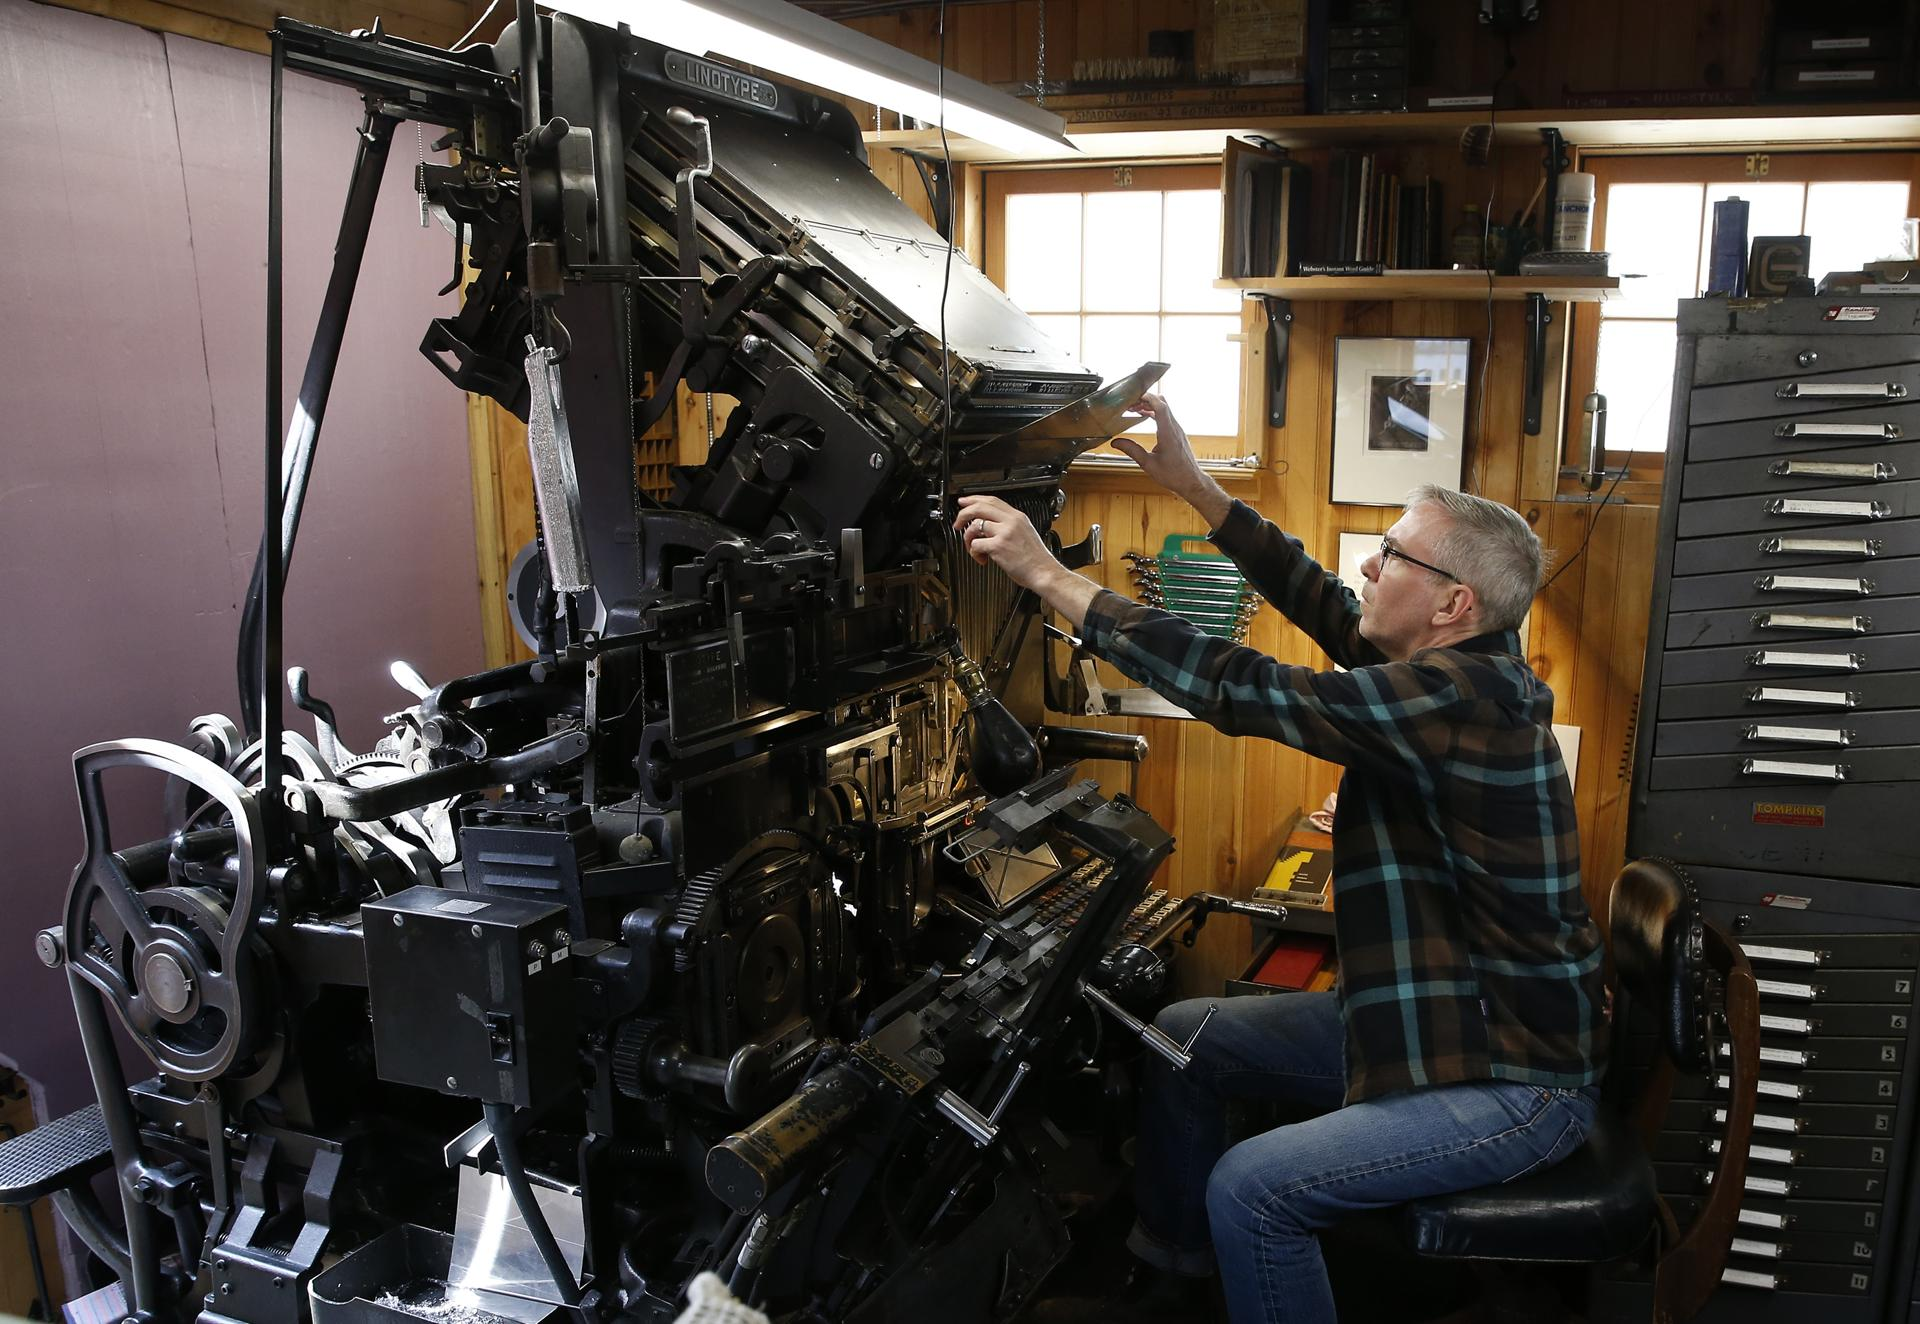 In his Jamaica Plain workshop, Michael Babcock demonstrated a 75-year-old Linotype Model 31, maybe the last hot-type press in Boston. Linotypes revolutionized the newspaper industry.